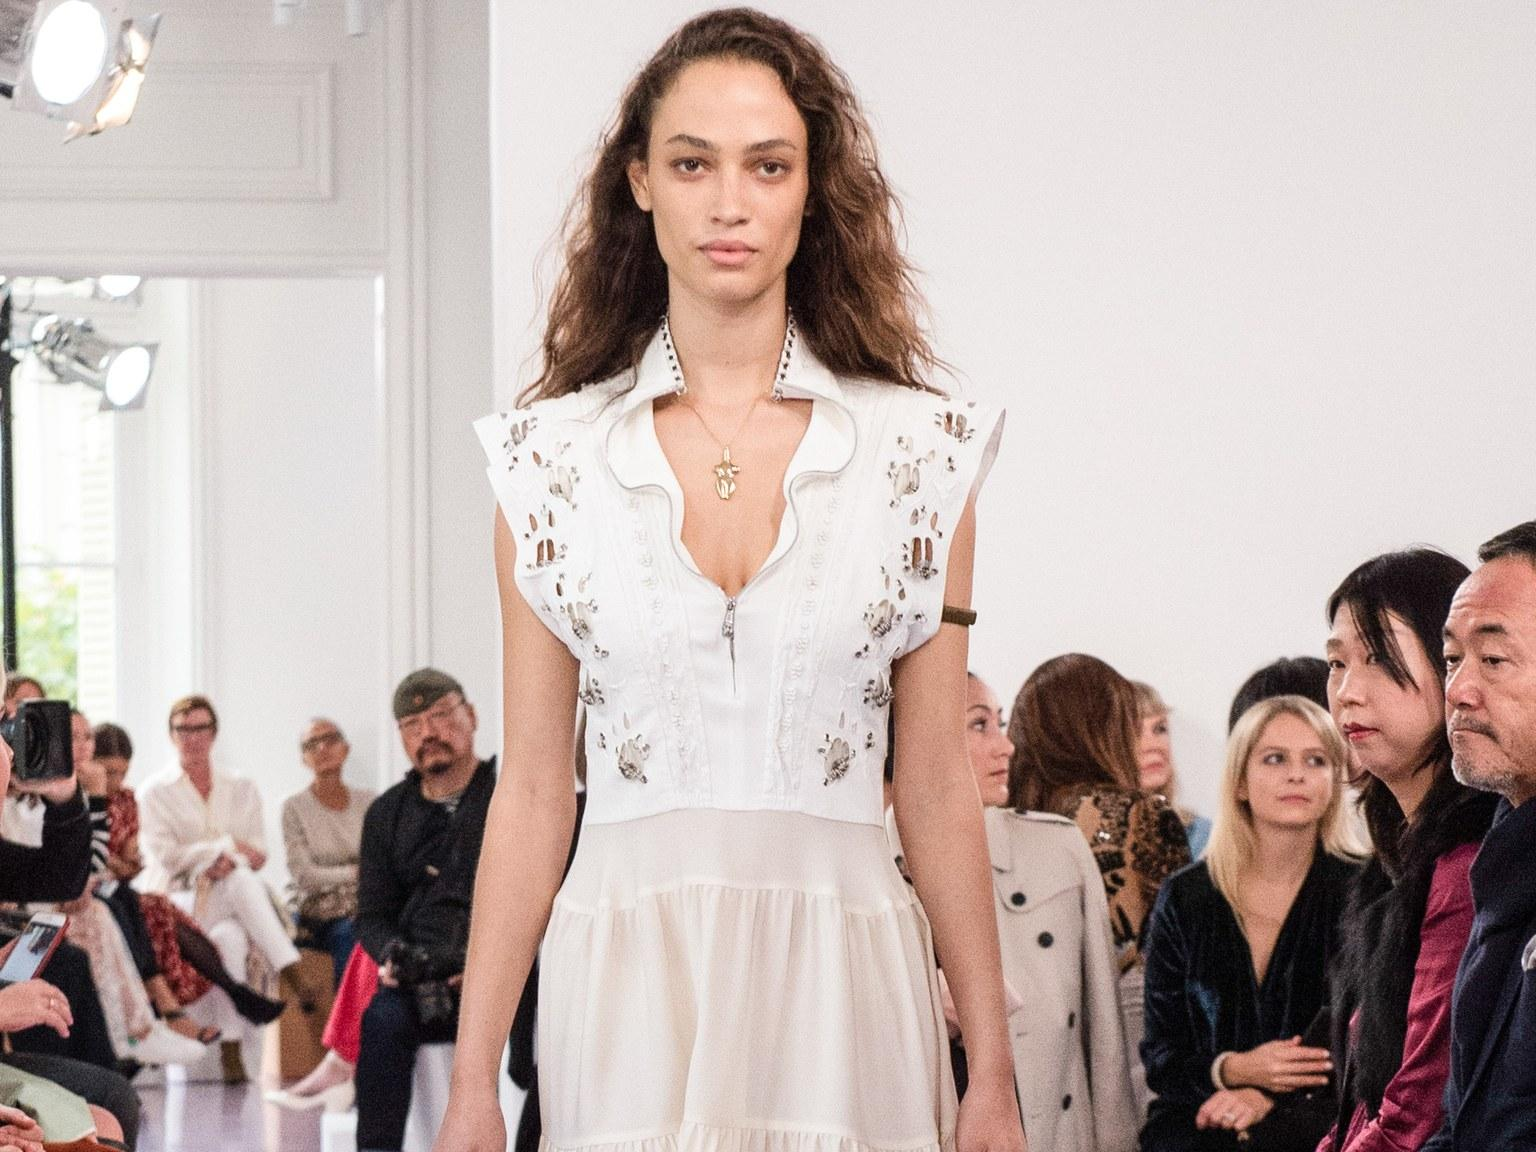 Model Sophie Koella on Why Getting Cast to Open the Chloé Show Was a